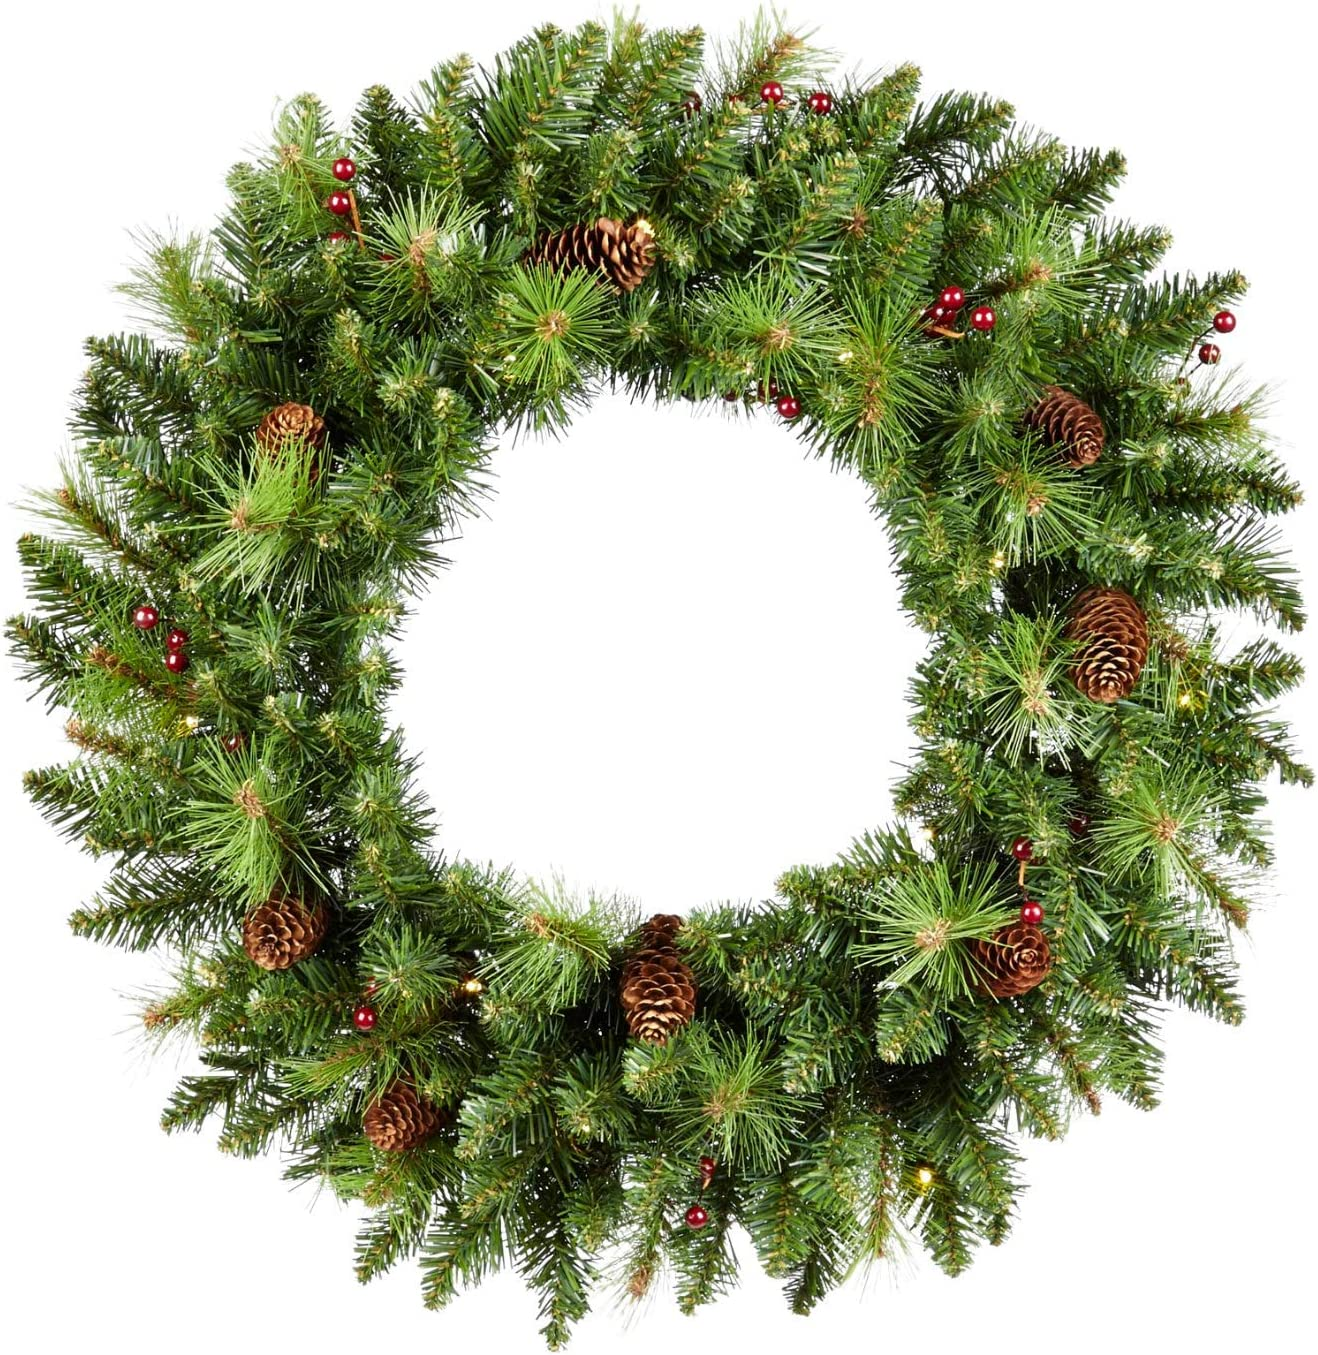 NOMA Pre-Lit 24-inch LED Berry & Pinecone Christmas Wreath with Battery Operated Lights | 20 Warm White Bulbs | 160 Pine Tips